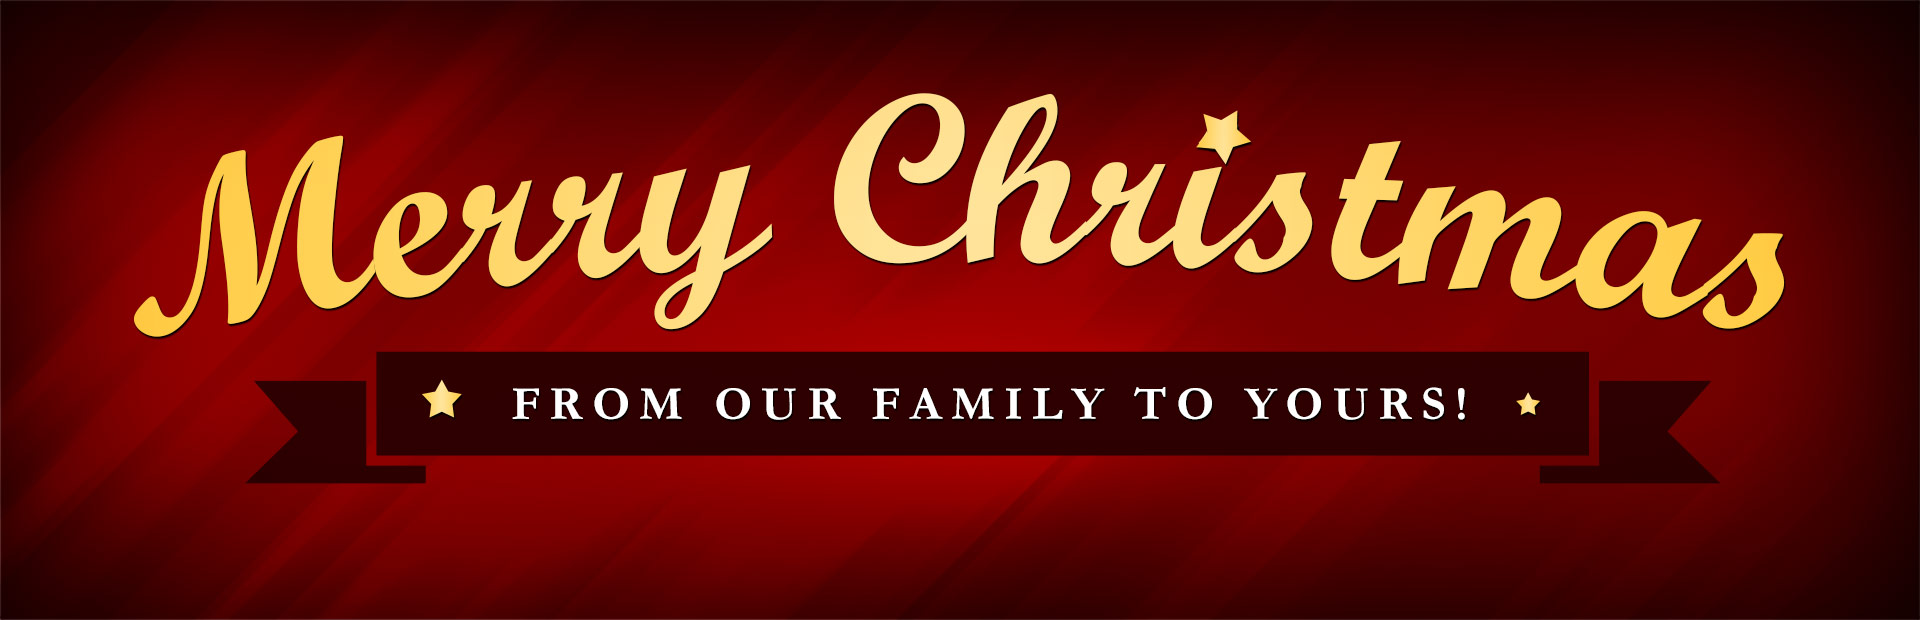 Merry Christmas from our family to yours! Click here to contact us.